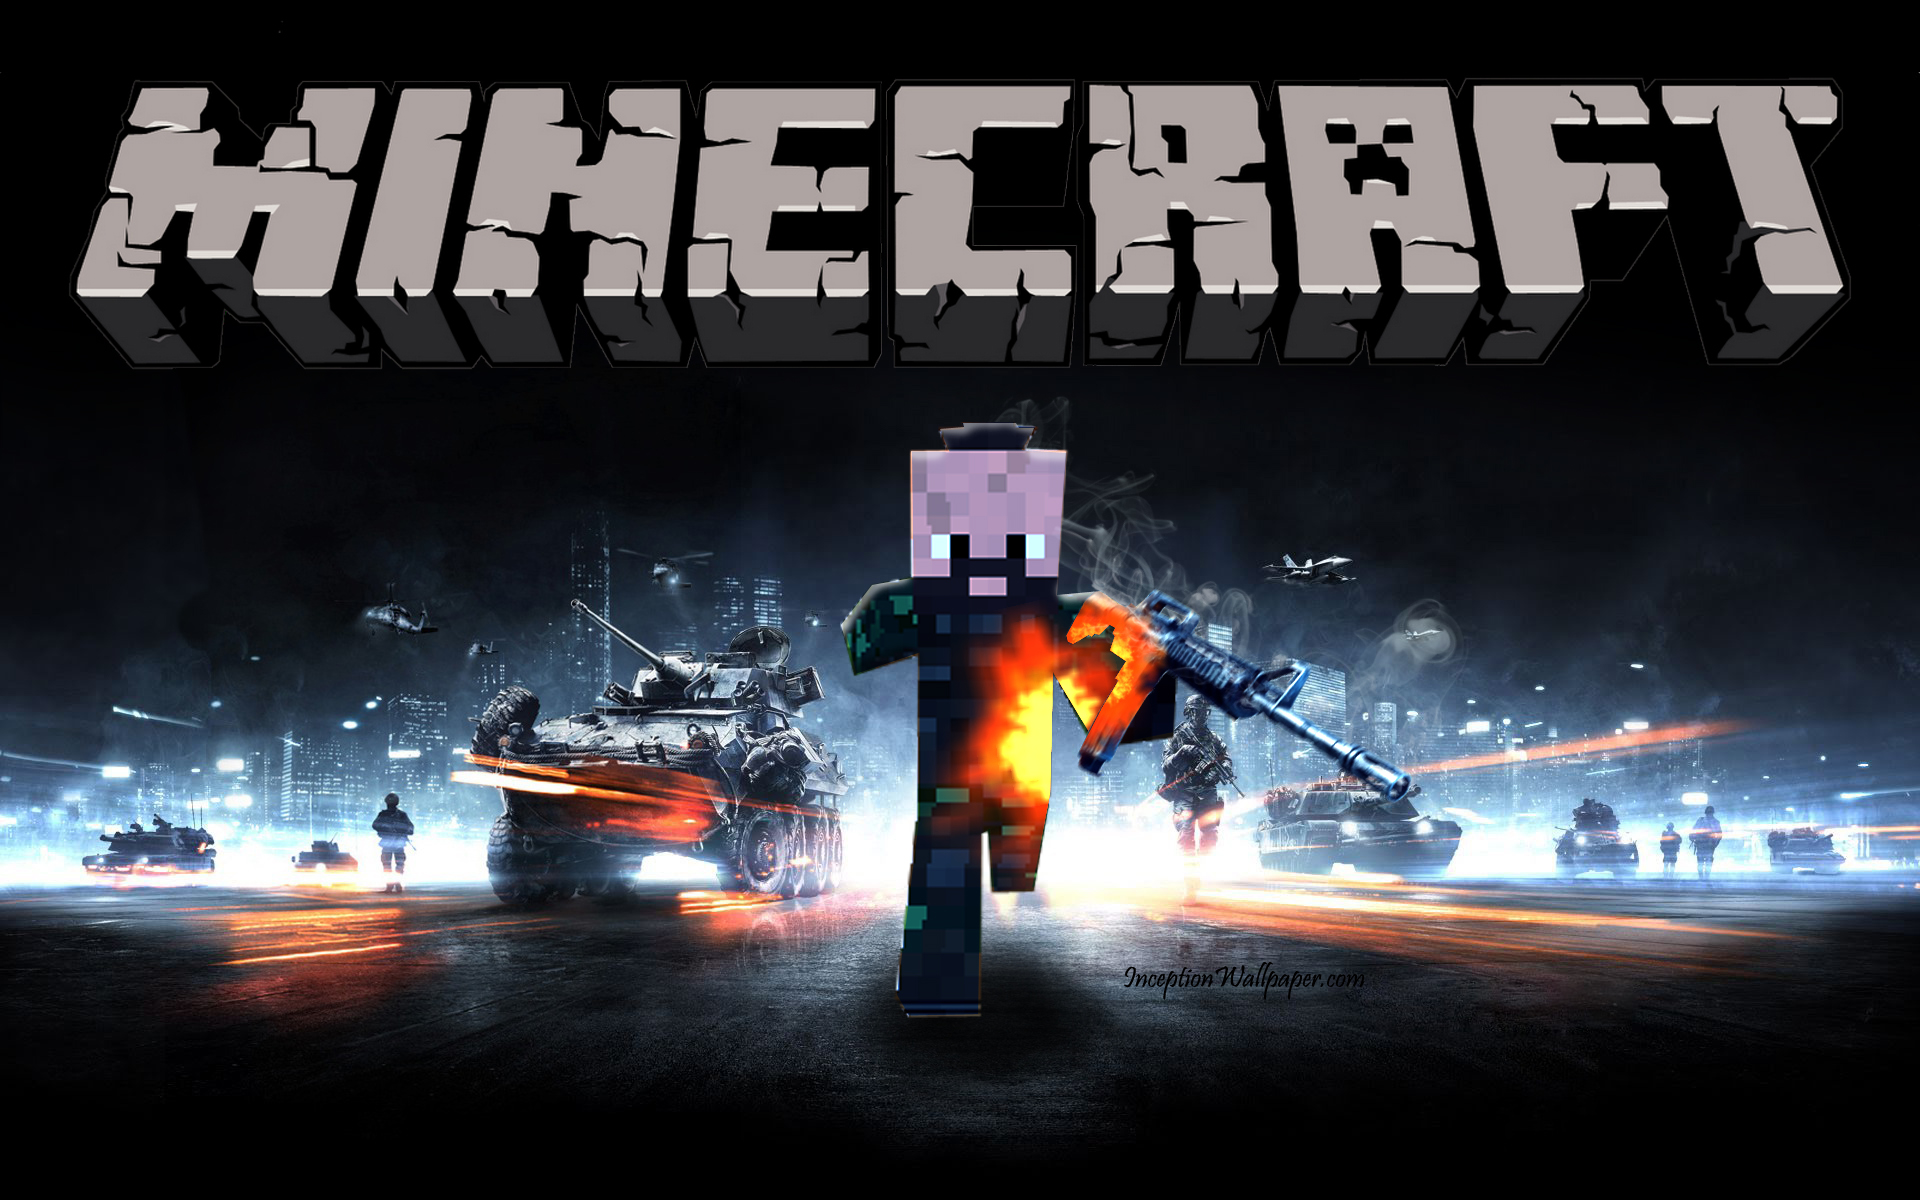 wallpapers minecraft awesome wallpaper 1920x1200 1920x1200